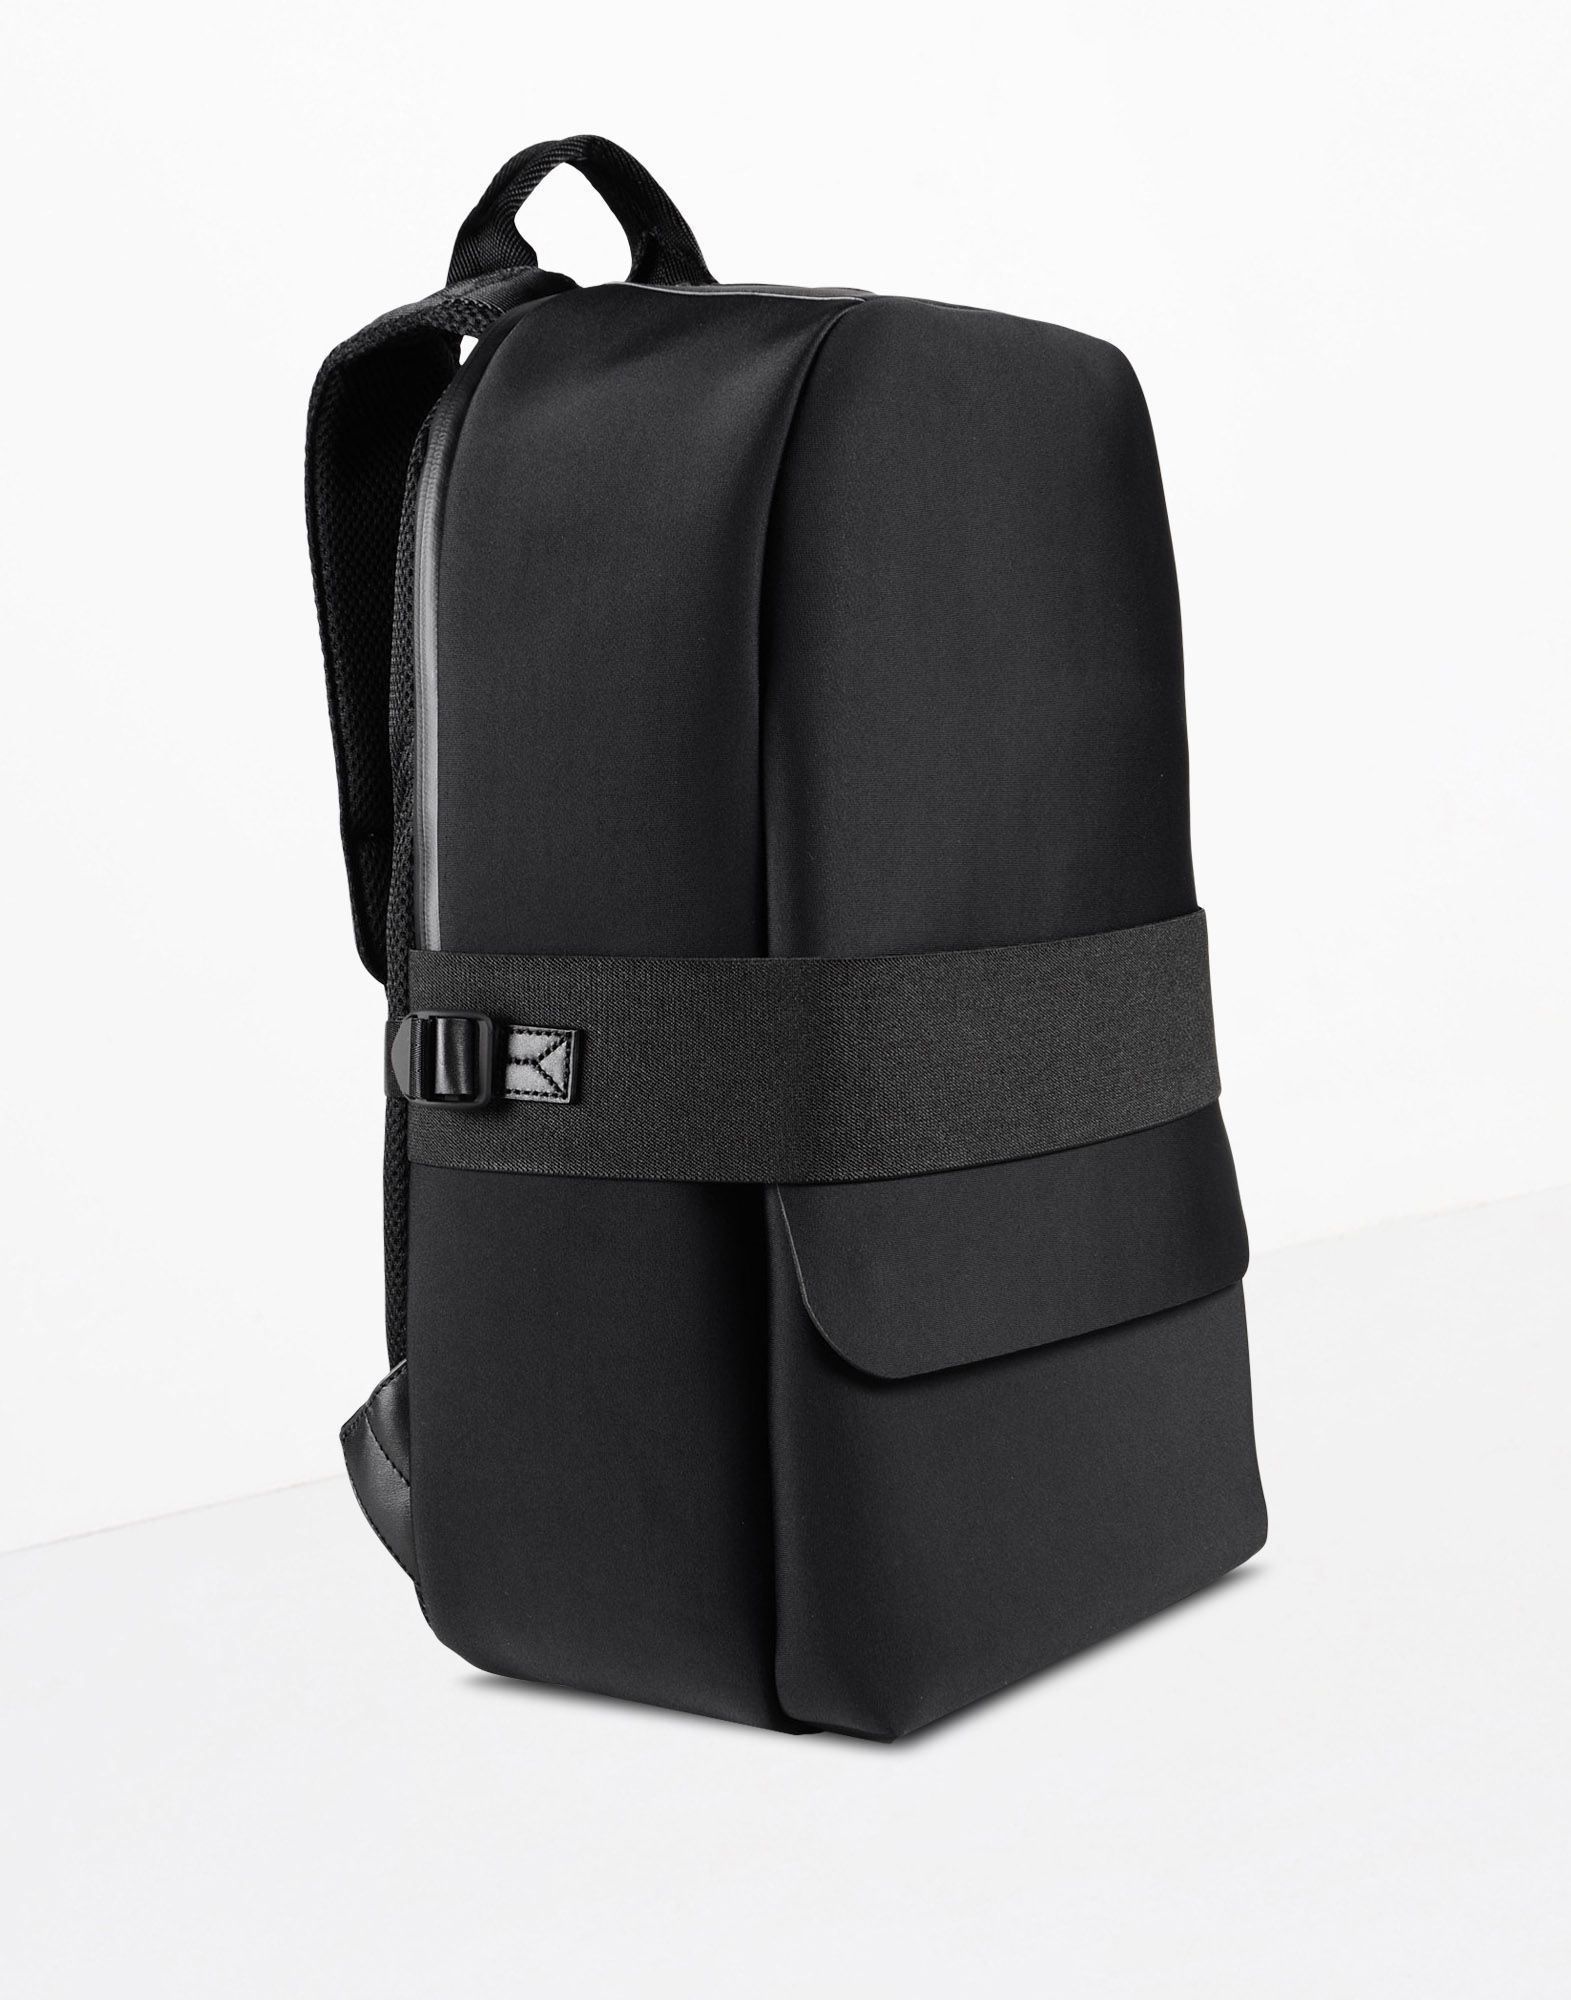 Y-3 QASA BACKPACK HANDBAGS unisex Y-3 adidas  3771e9c021164